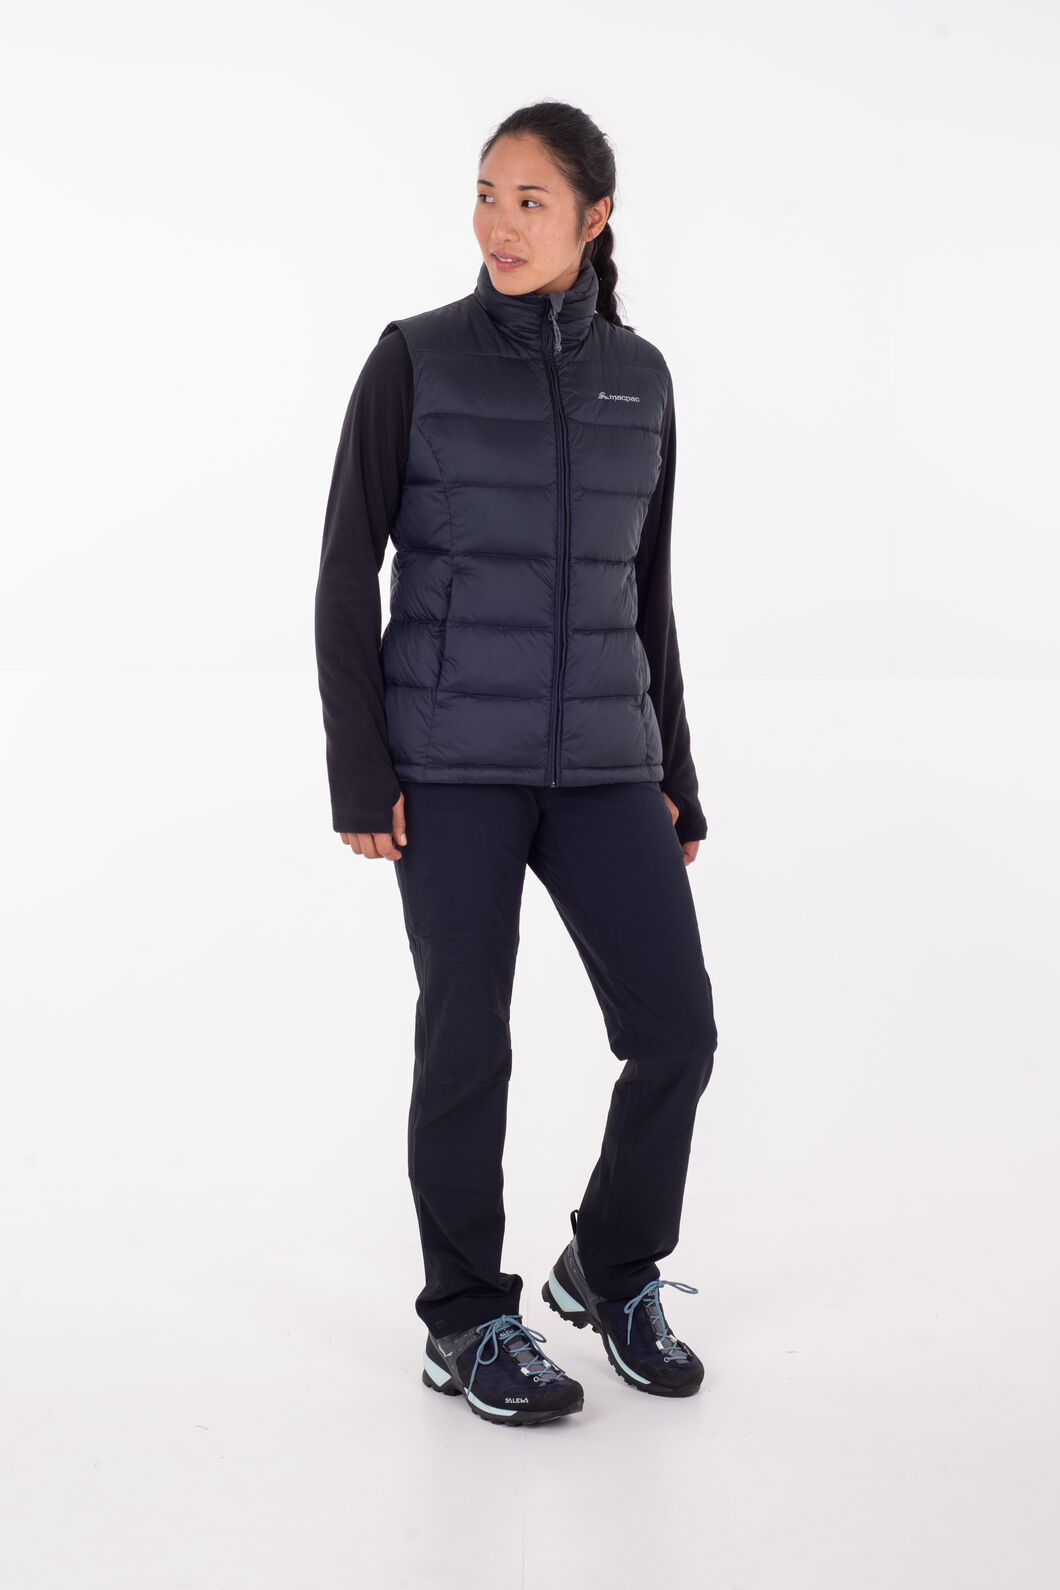 Macpac Halo Down Vest - Women's, Woodrose, hi-res